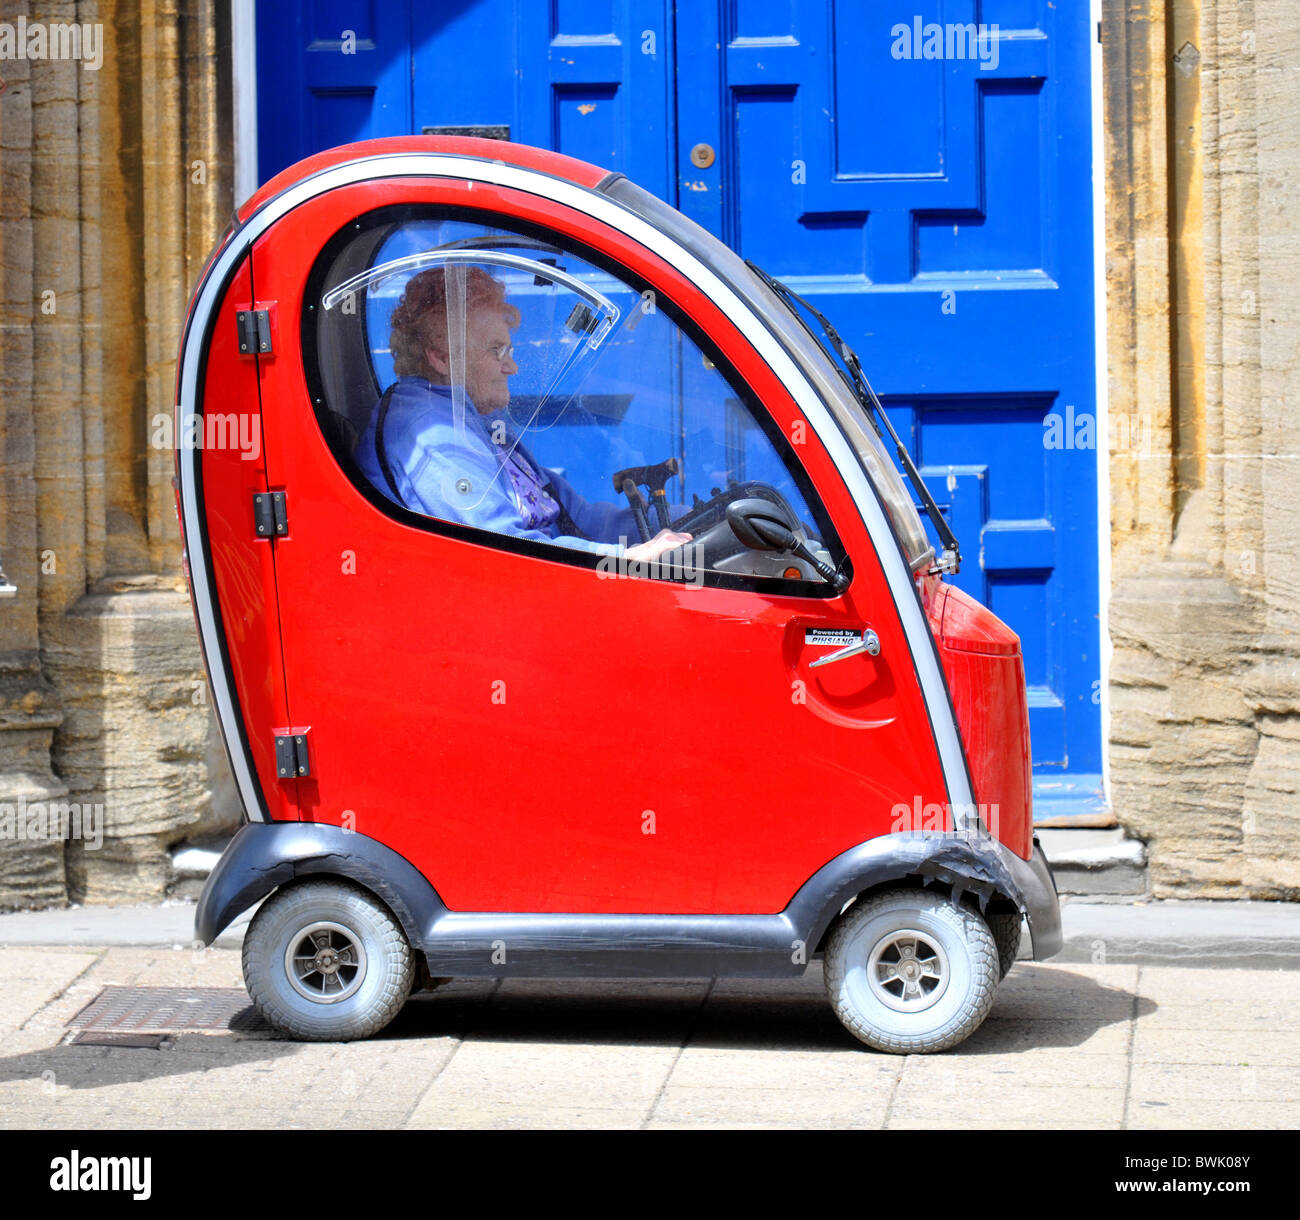 'Mobility scooter' UK - Stock Image